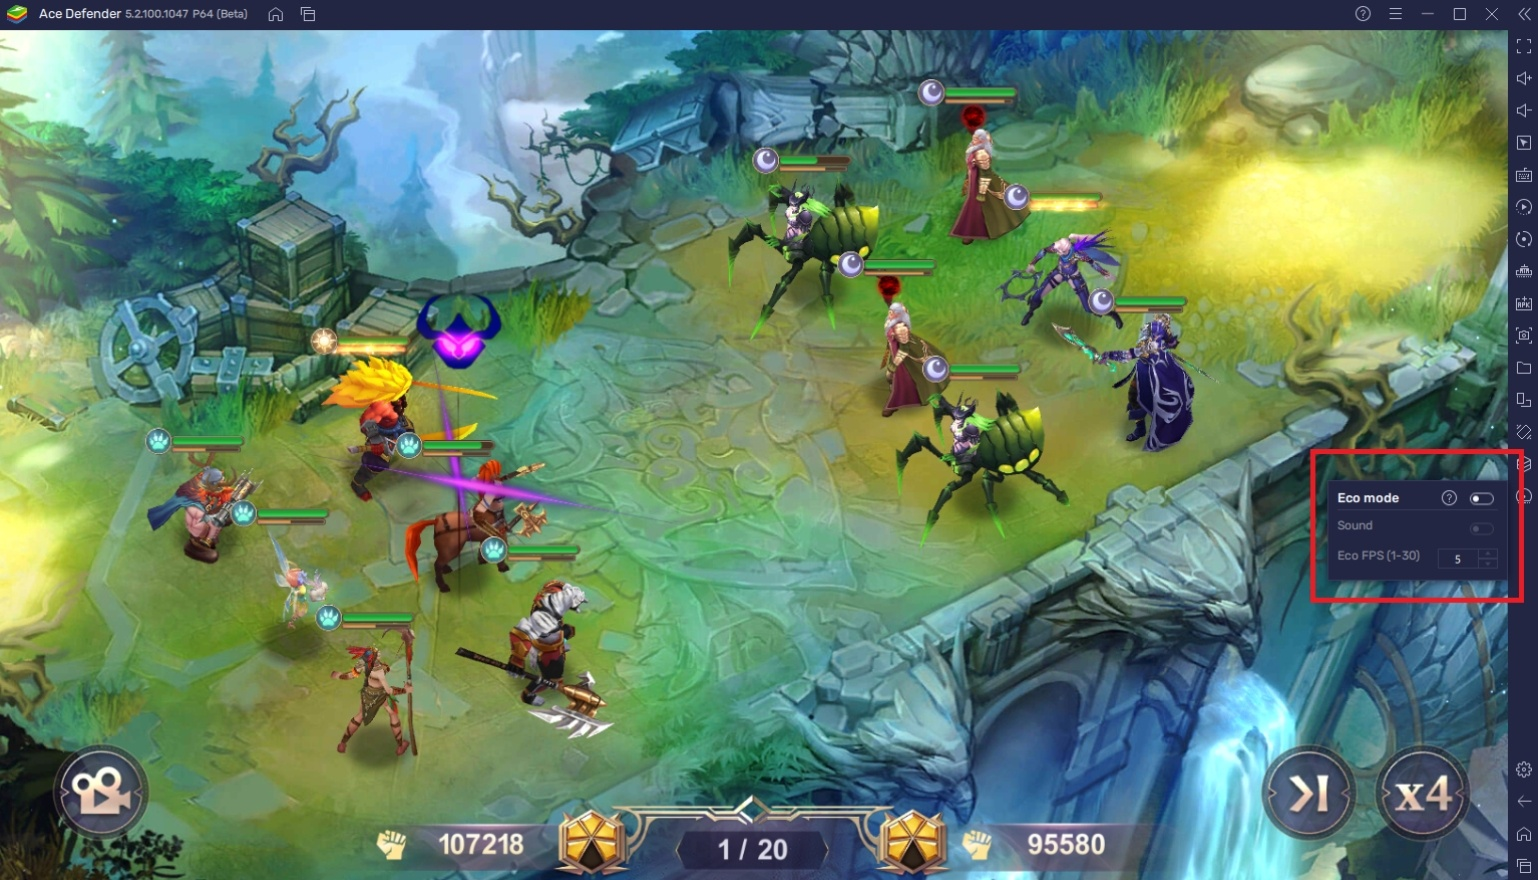 How to Play Ace Defender on PC with BlueStacks